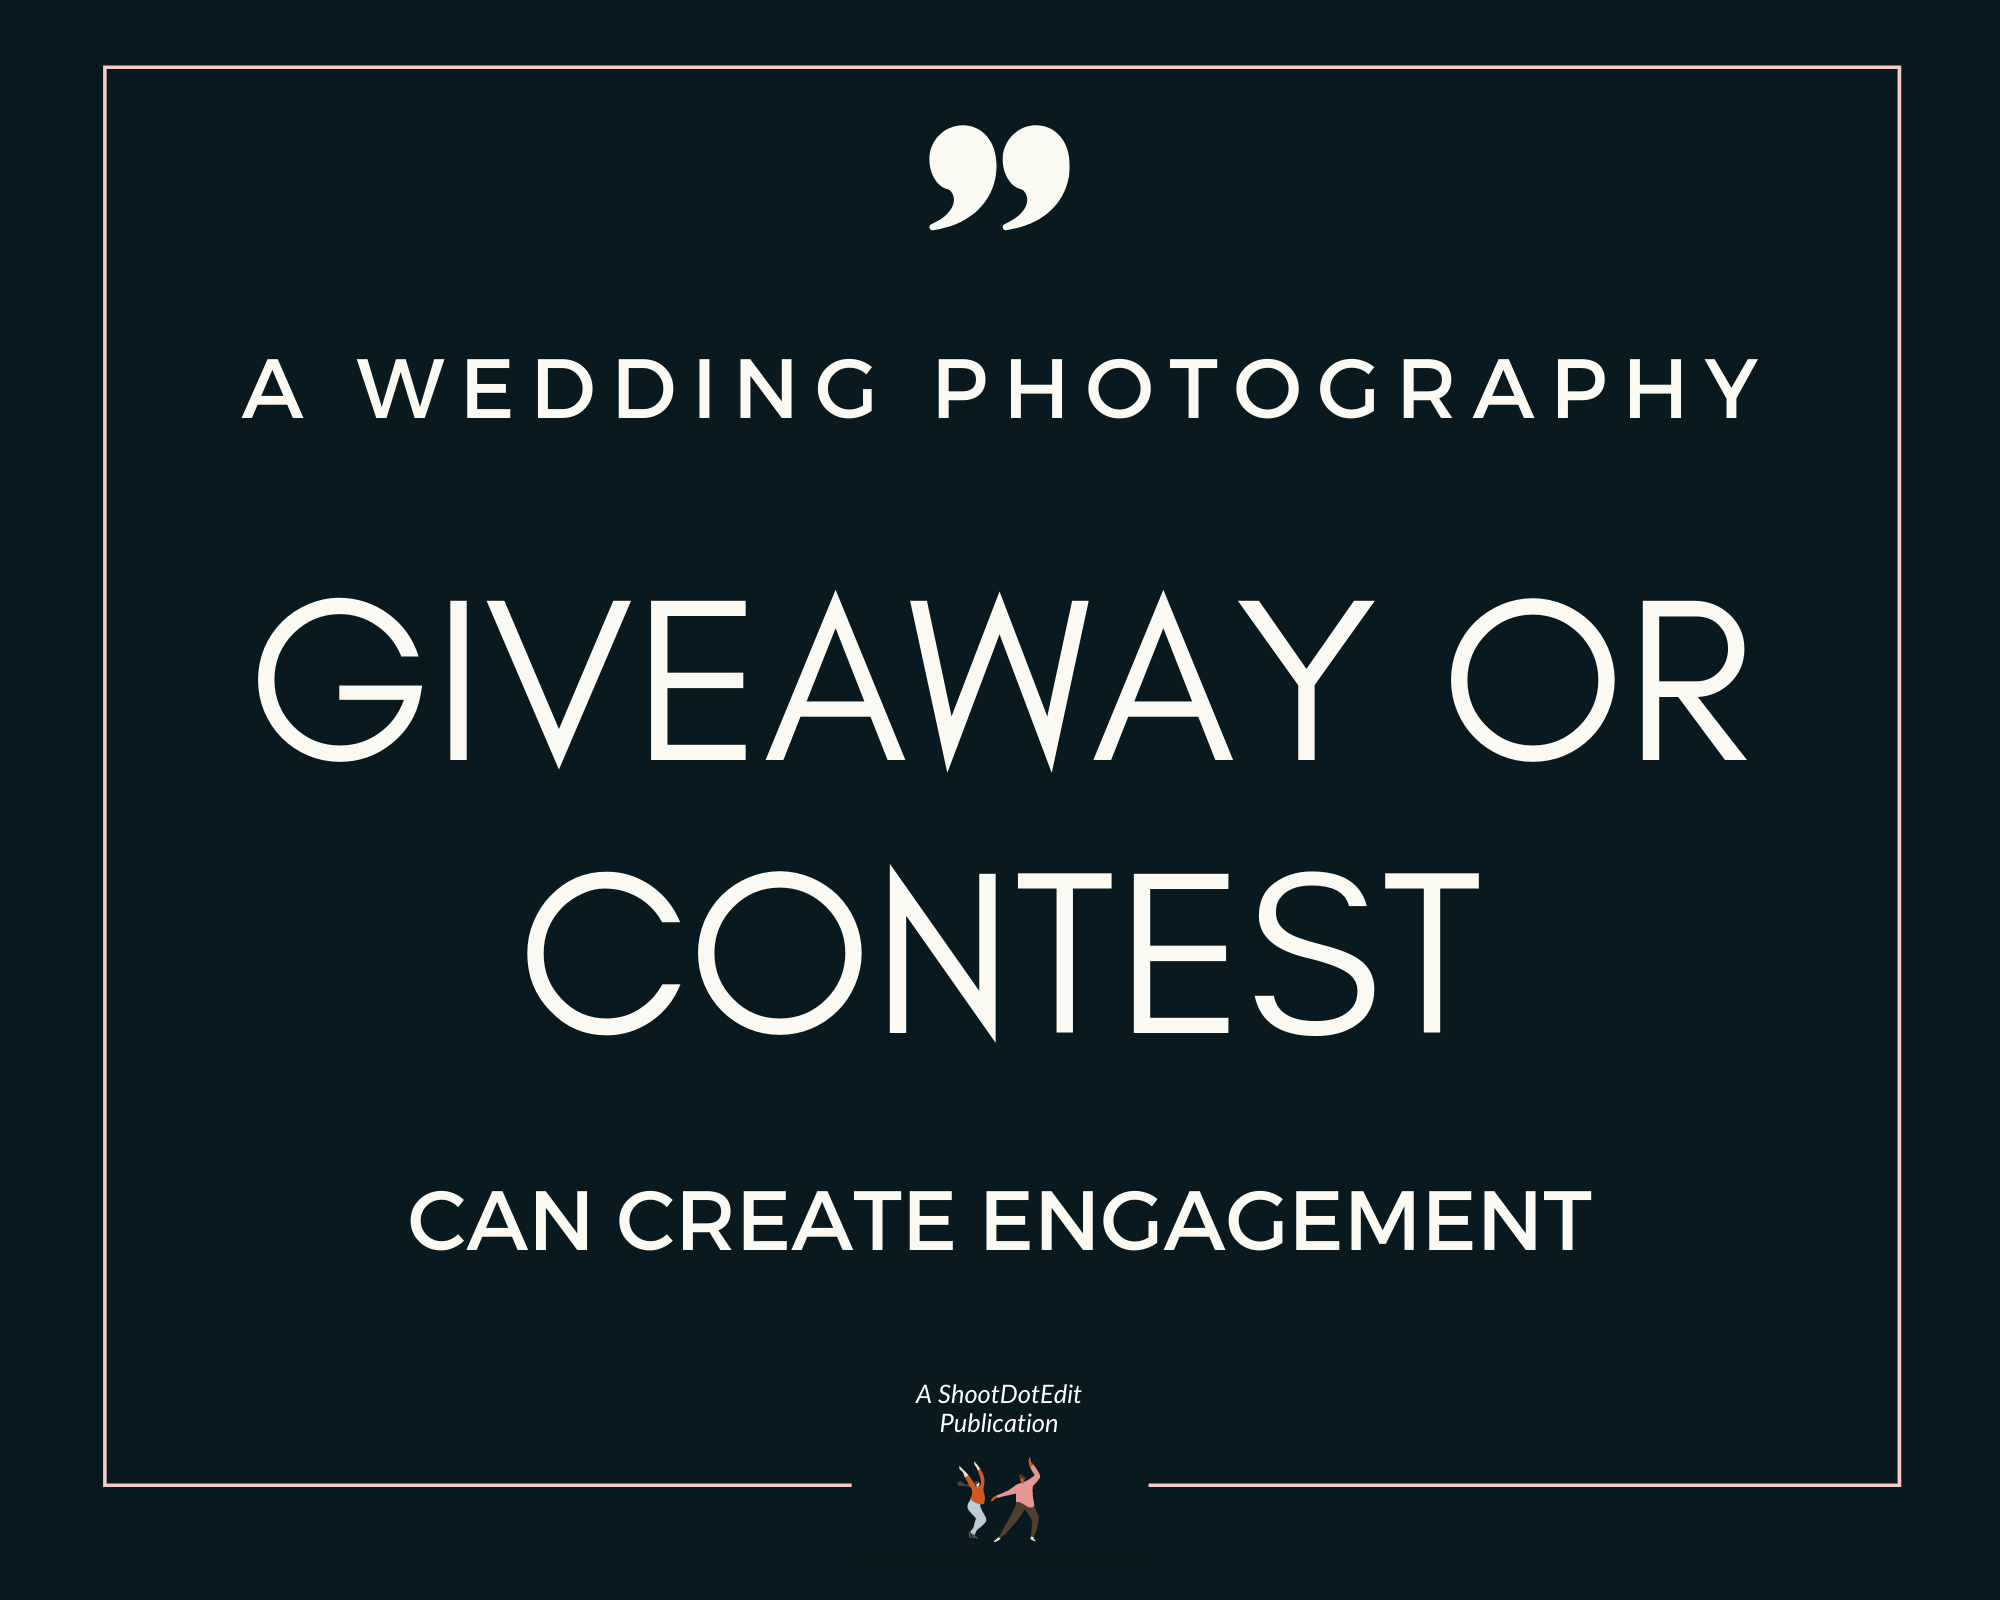 Infographic stating a wedding photography giveaway or contest can create engagement